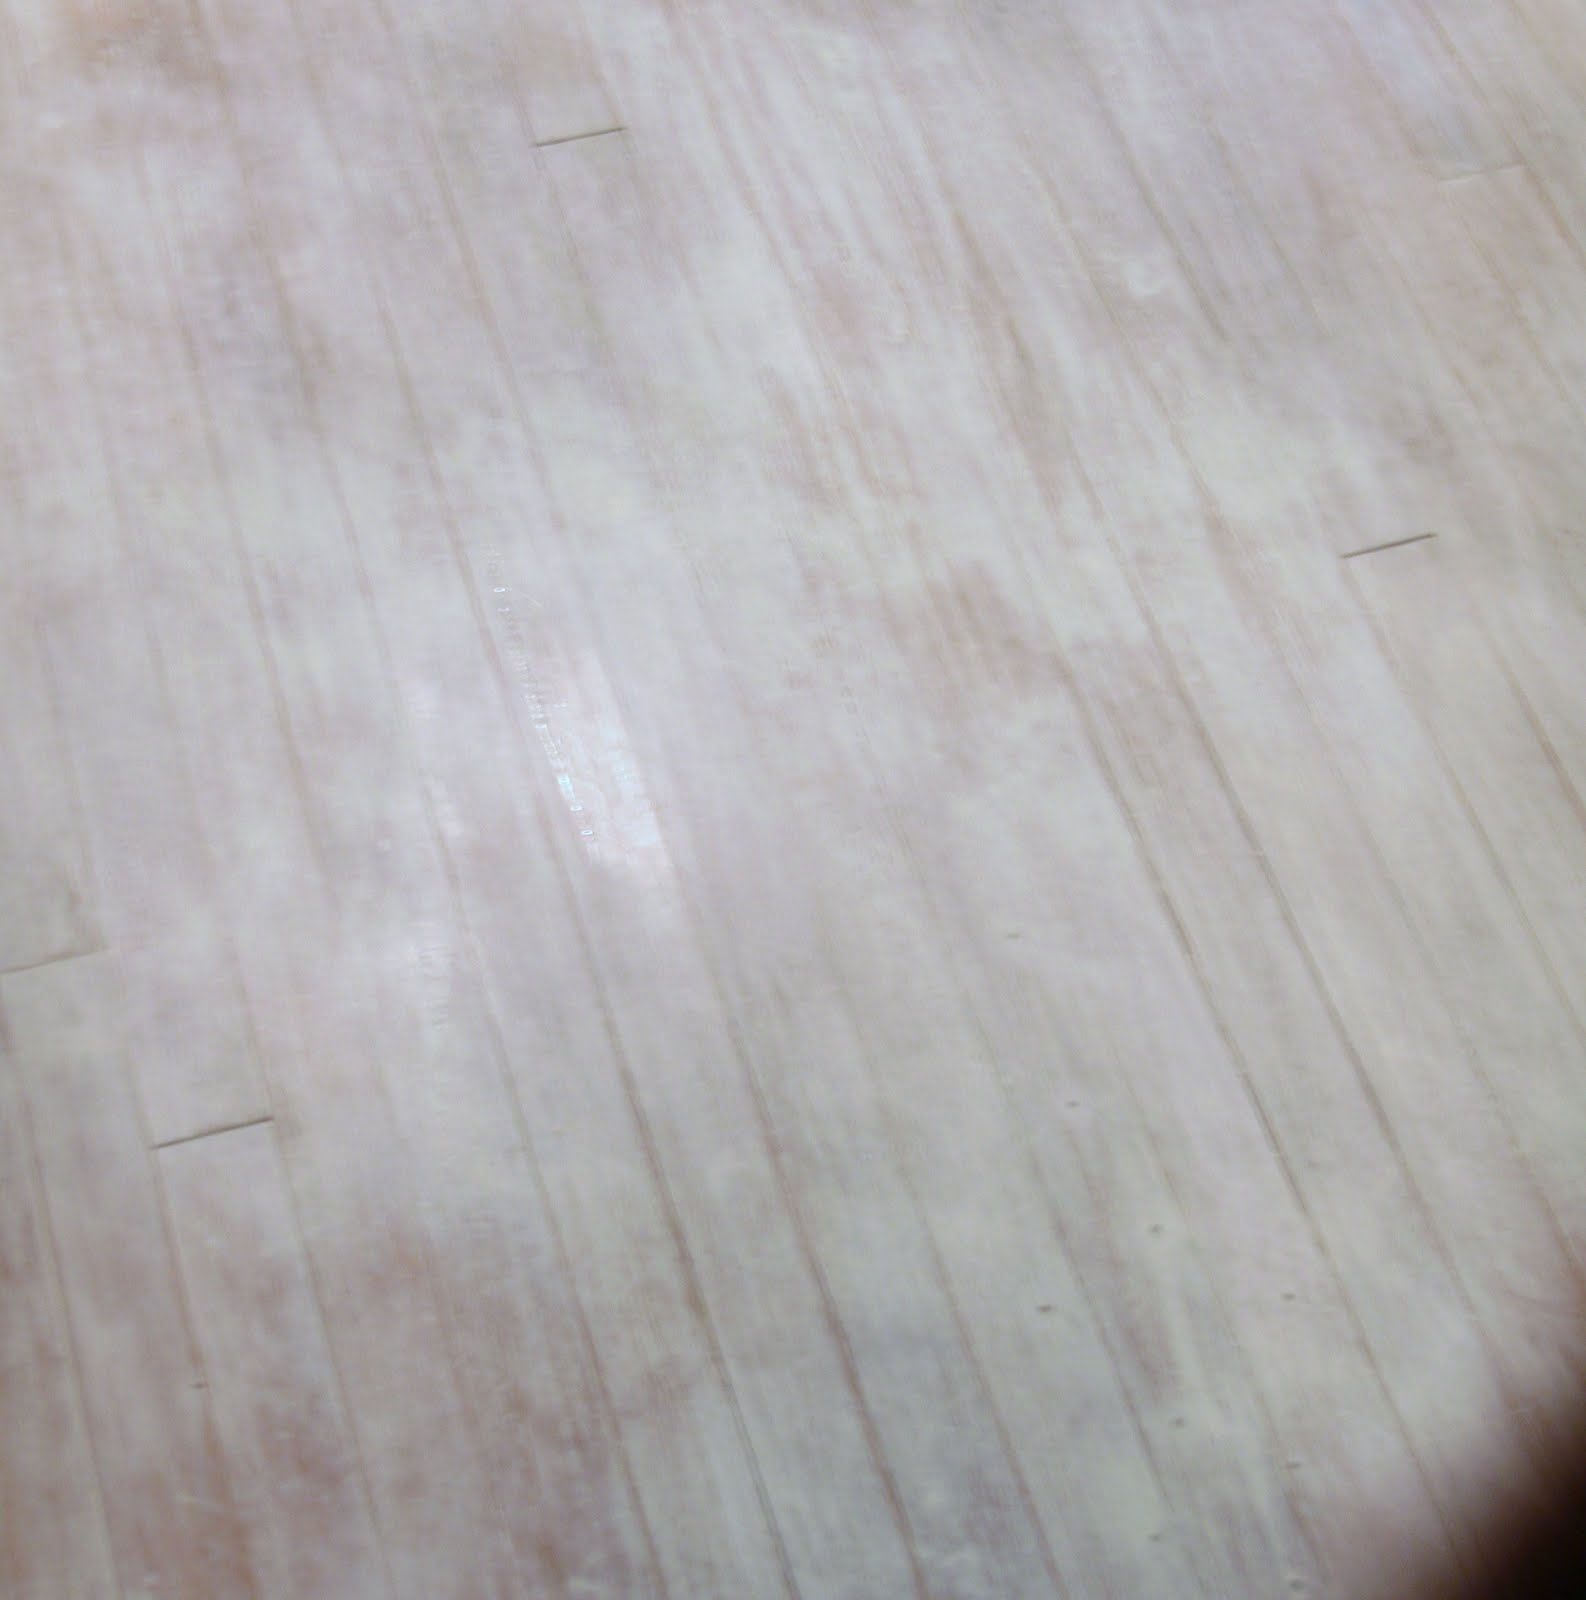 Floors limed washed with chalk paint lady butterbug for Painting vinyl floors with chalk paint